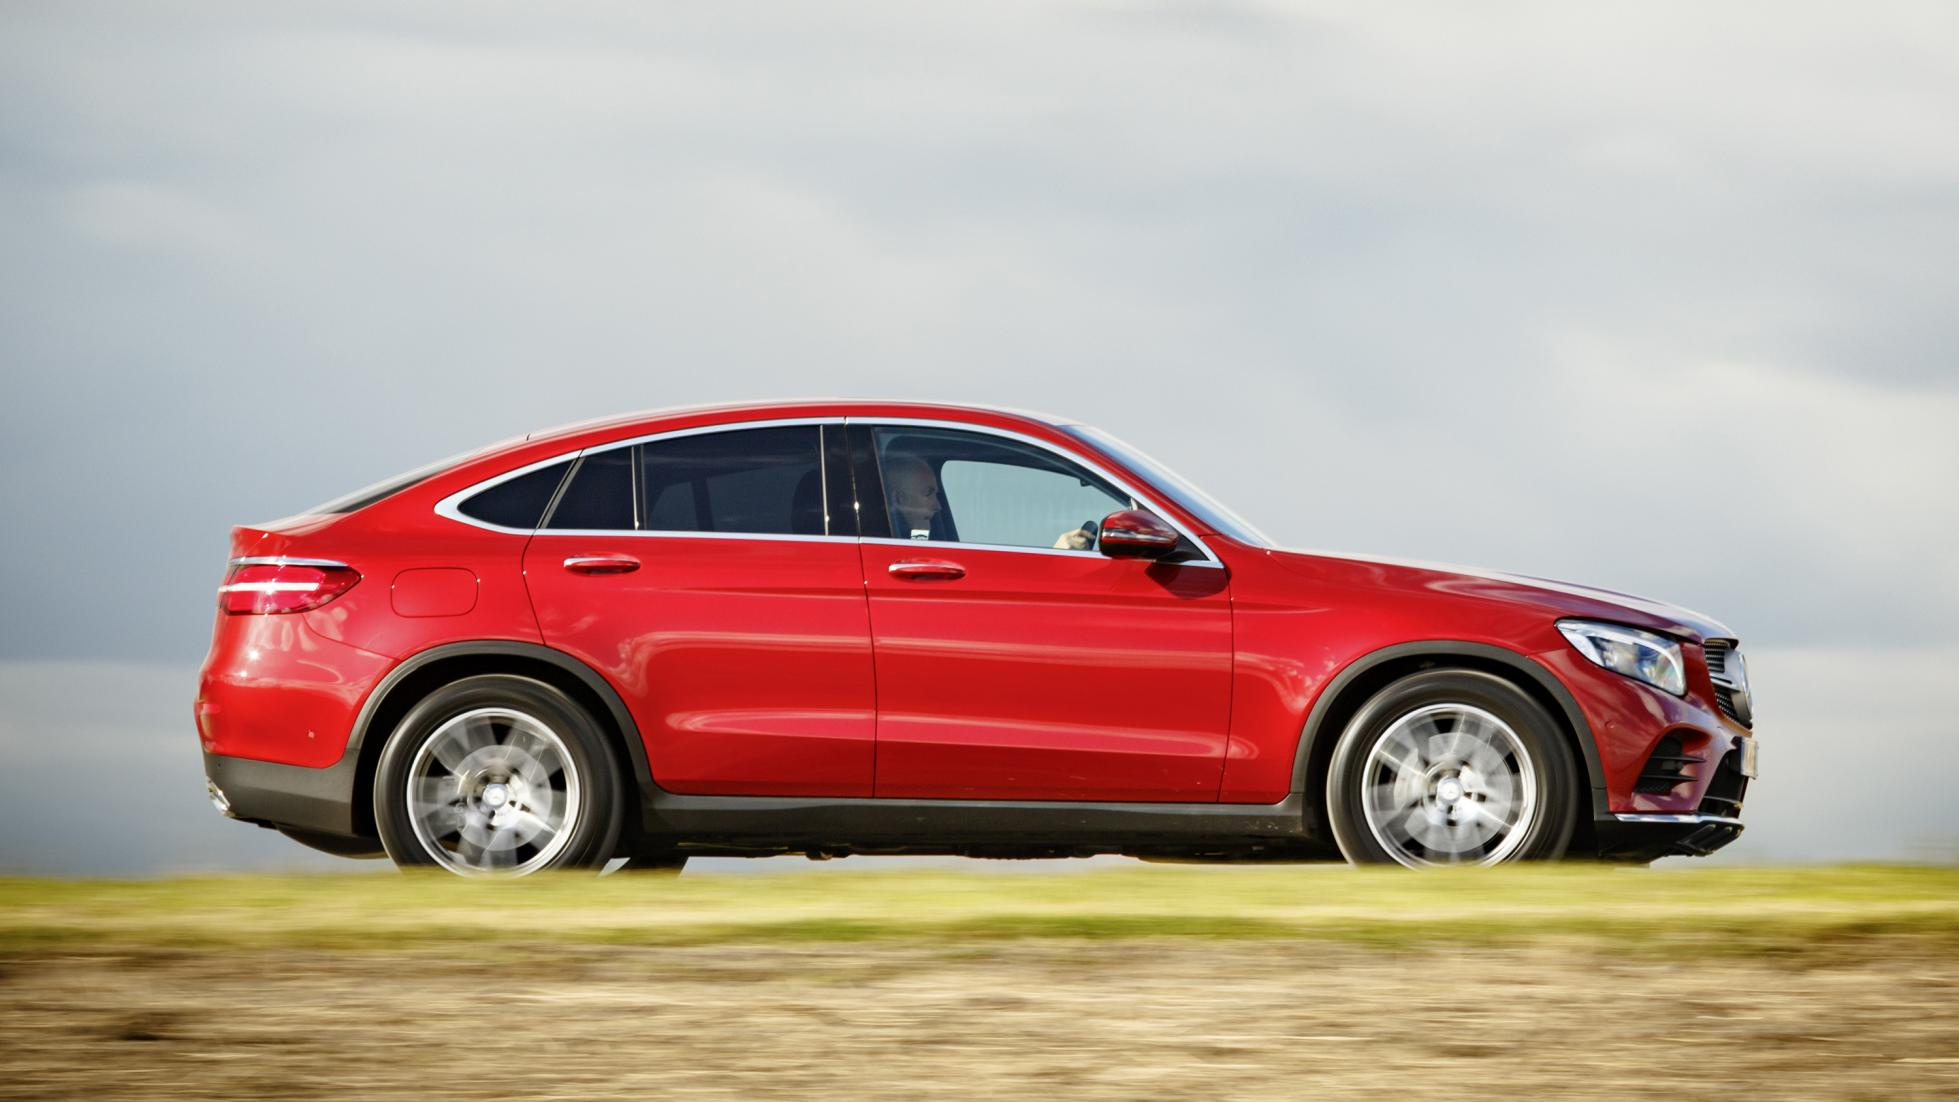 2018 Mercedes Benz Glc Coupe Suv Review >> Mercedes-Benz GLC 250d Coupe Review - BenzInsider.com - A Mercedes-Benz Fan Blog